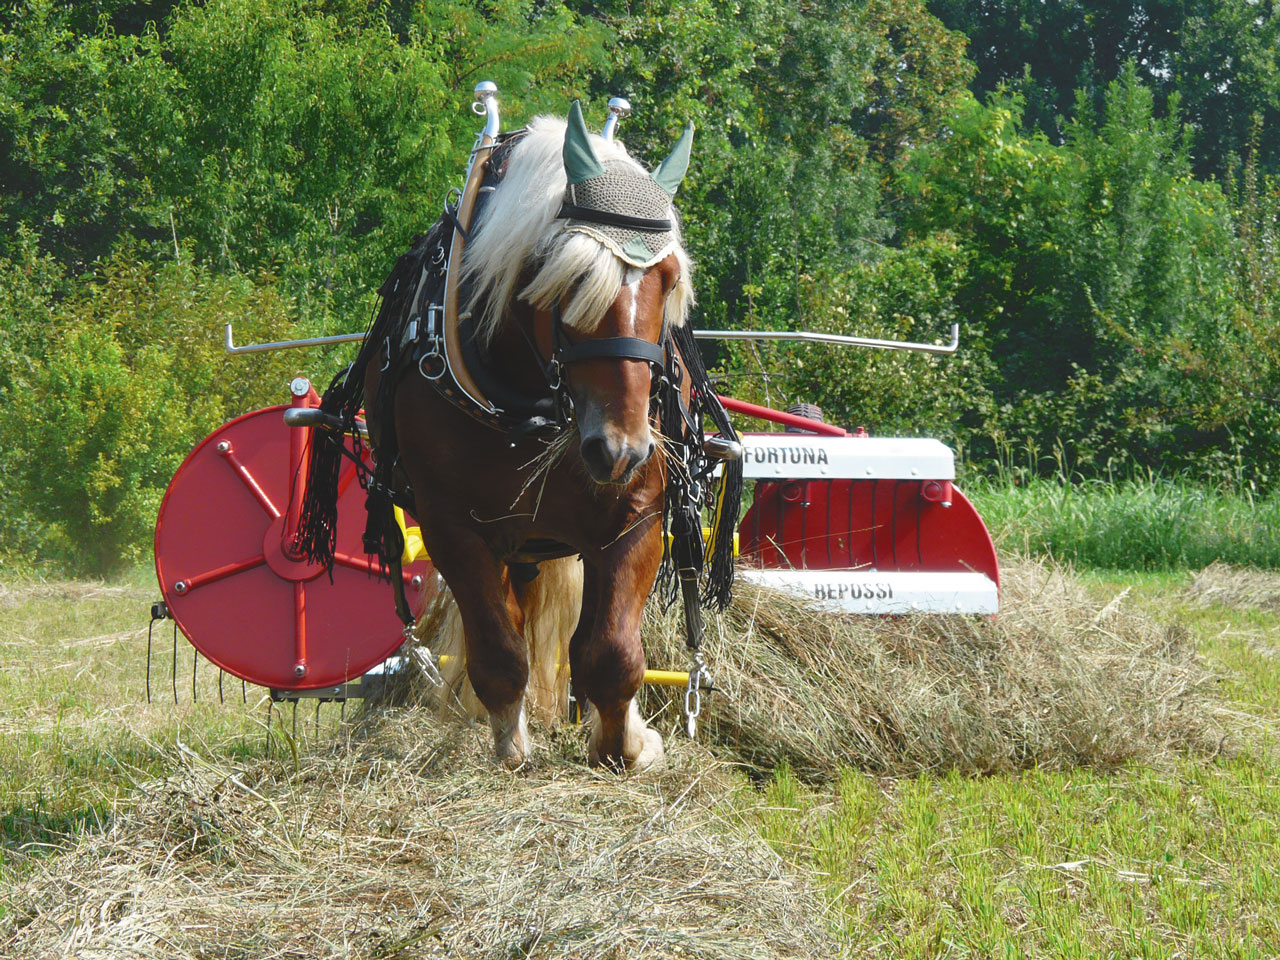 The State of Horsedrawn Technologies